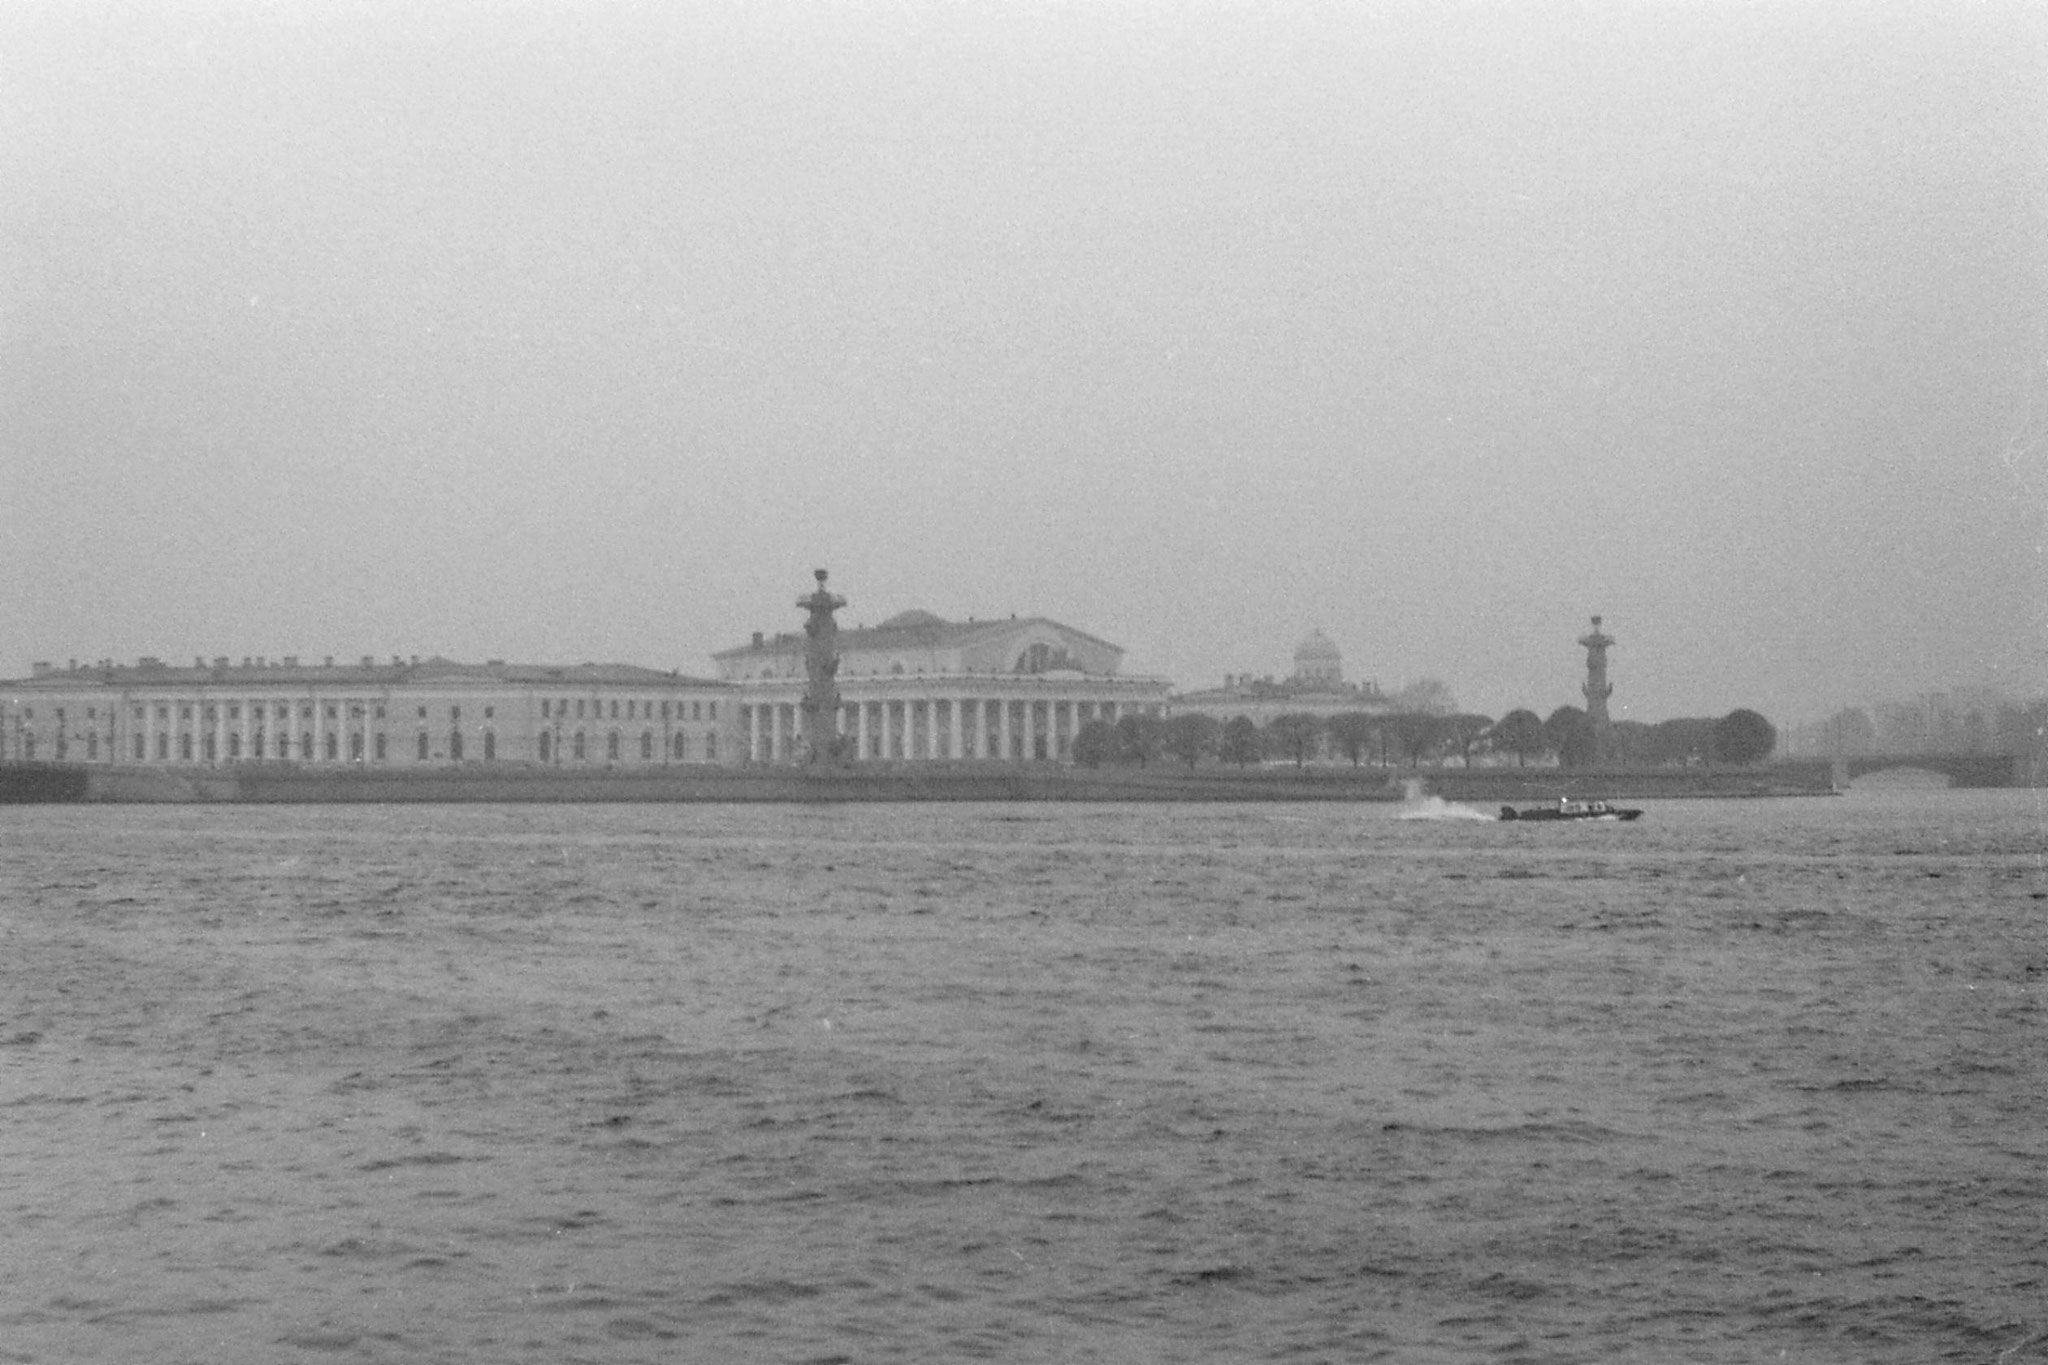 15/10/1988: 30: view across Neva